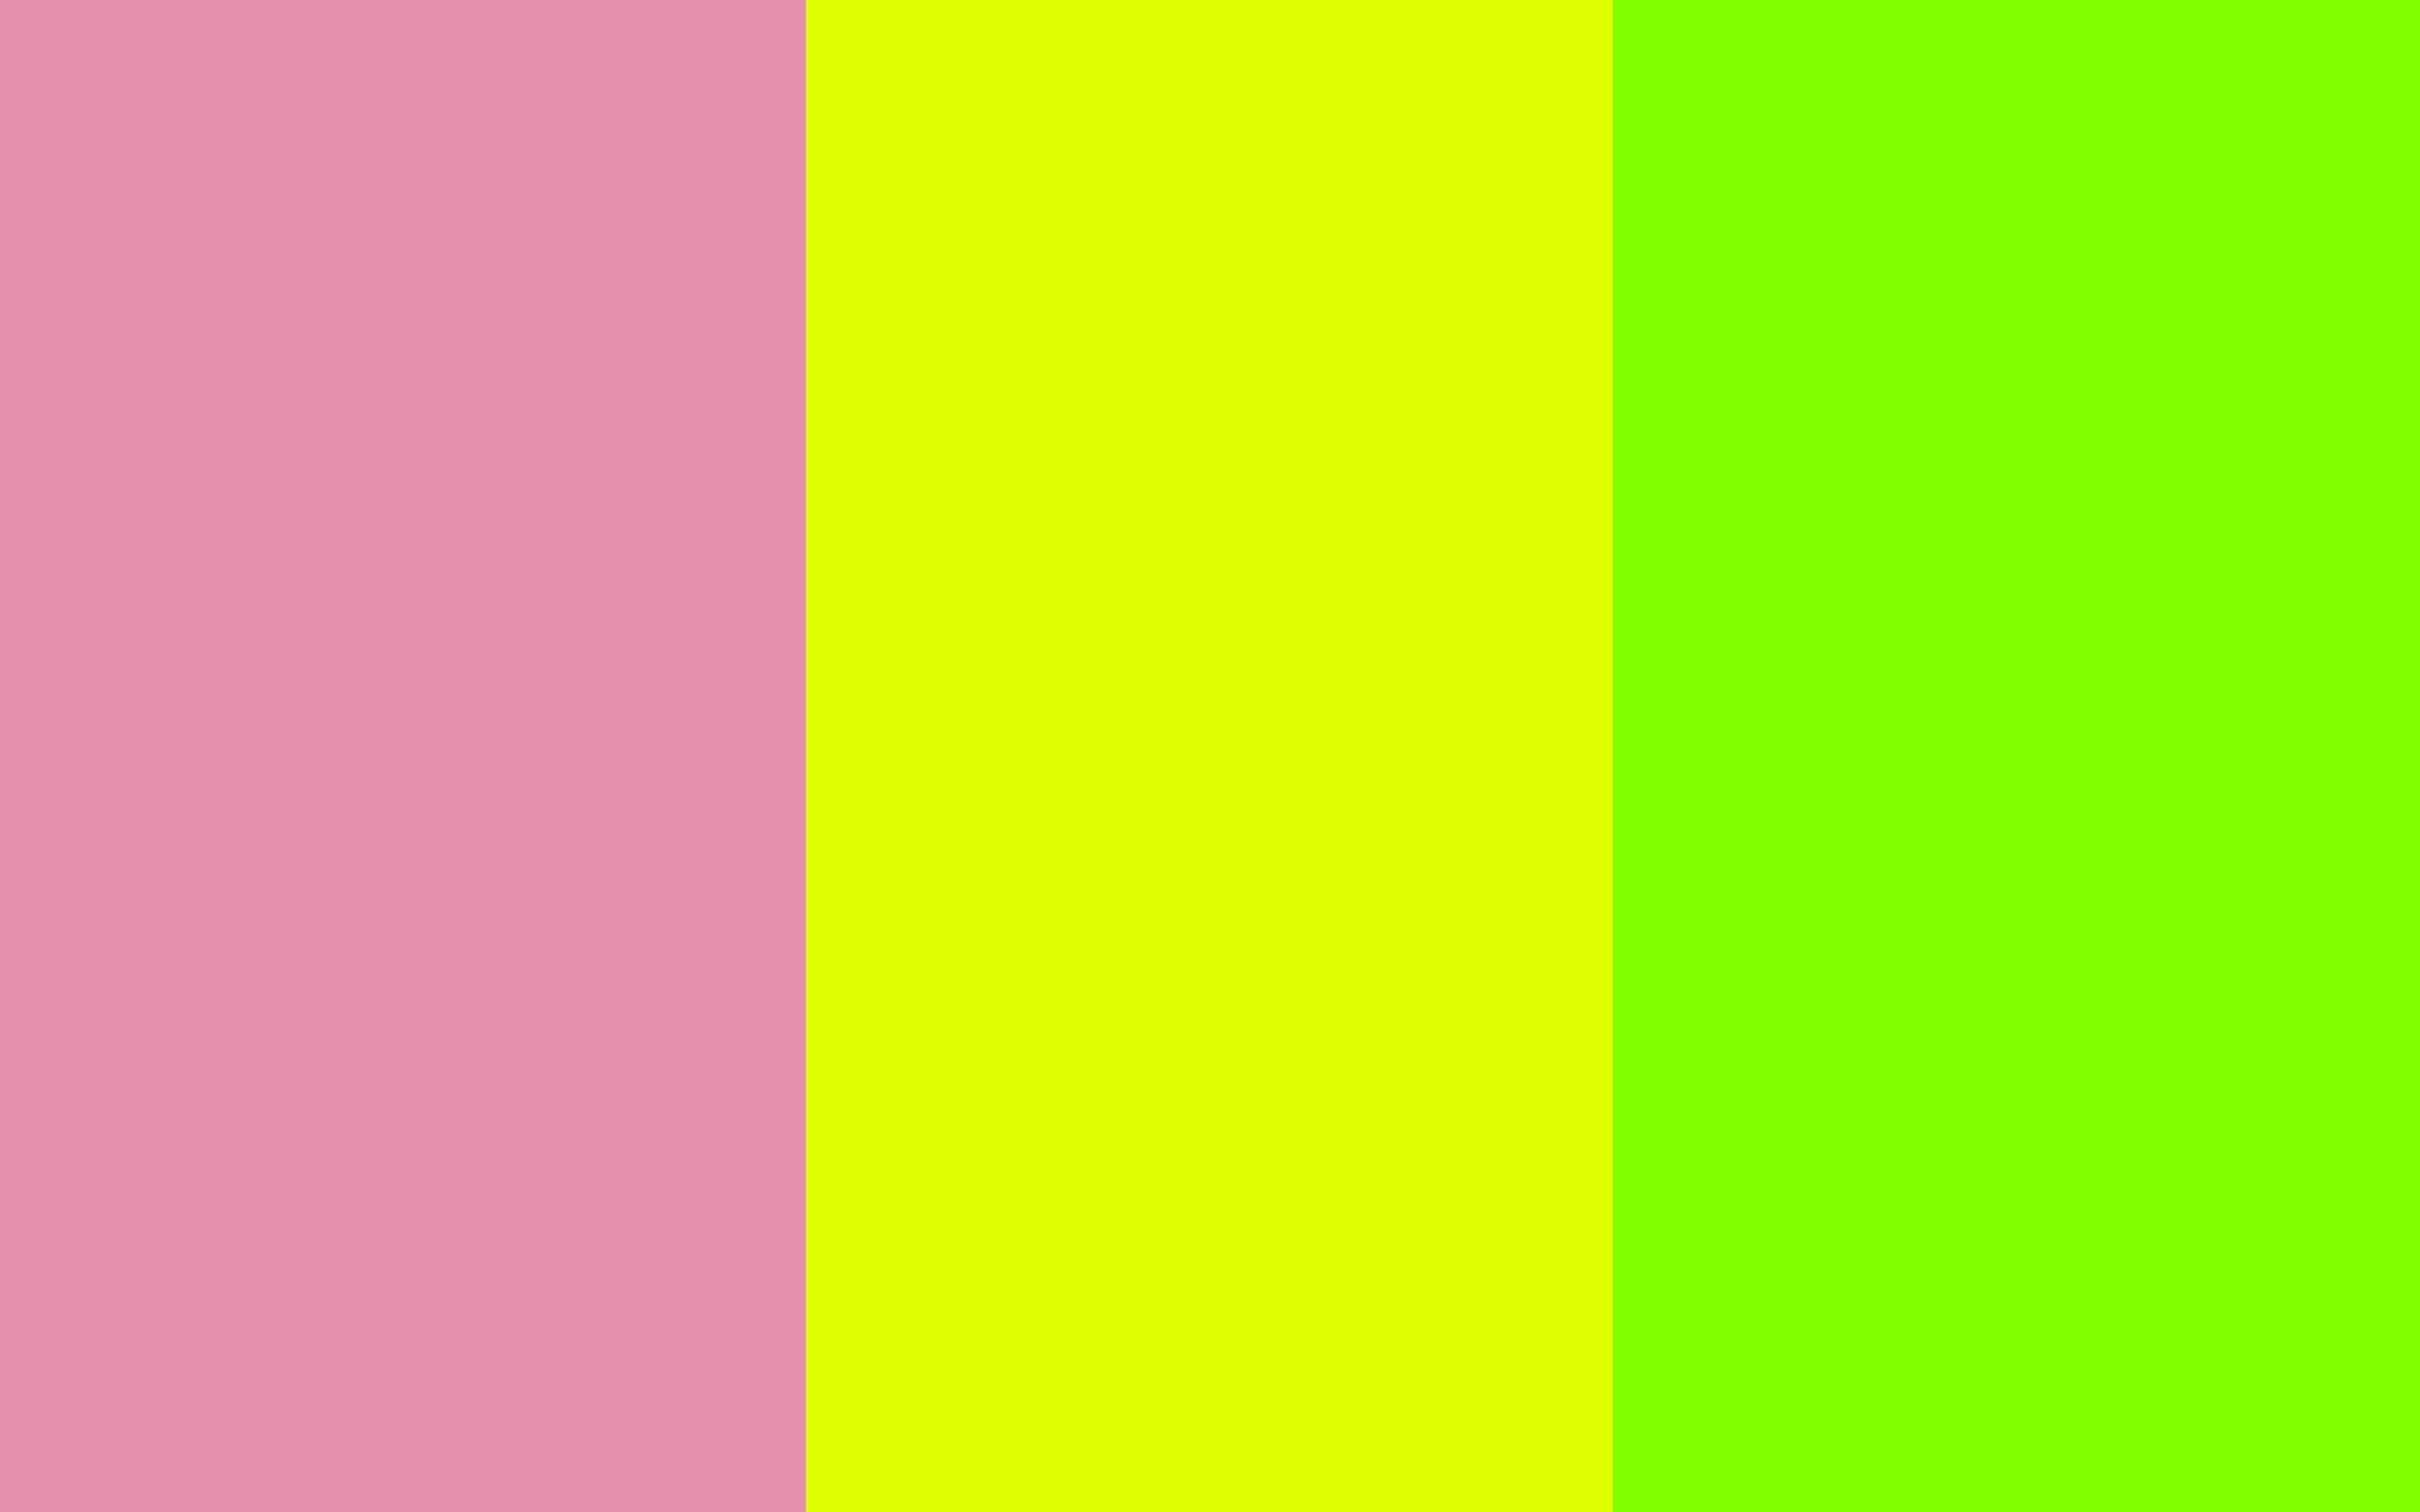 Web colors lime -  2560x1600 Charm Pink Chartreuse Traditional Chartreuse For Web